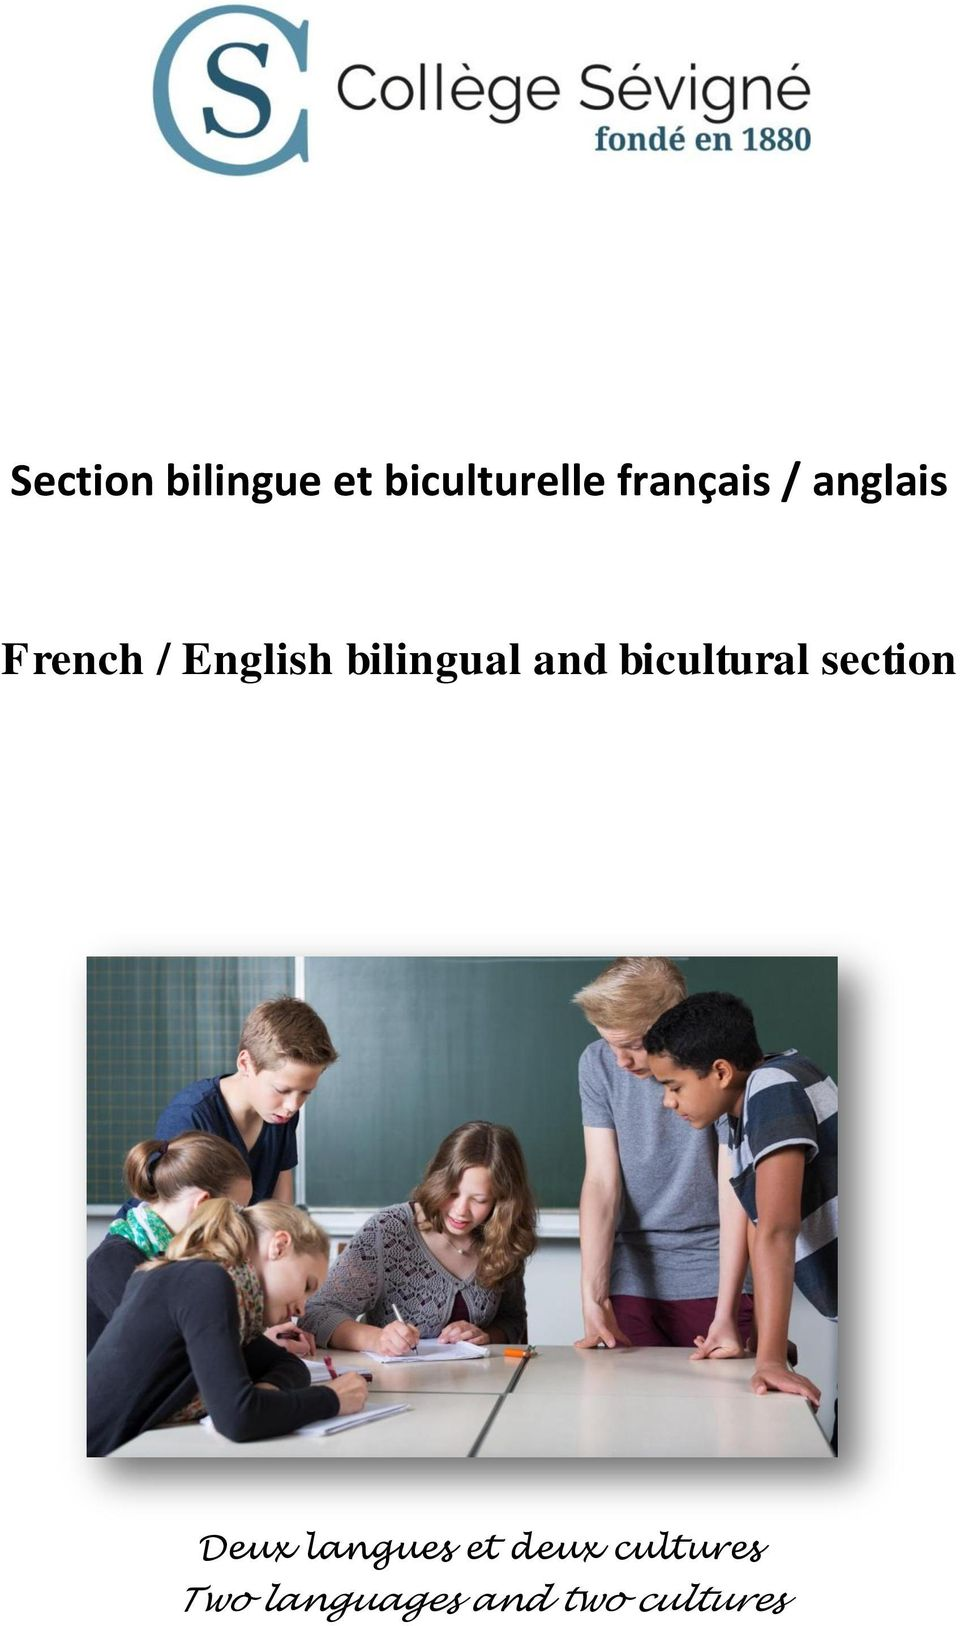 bilingual and bicultural section Deux